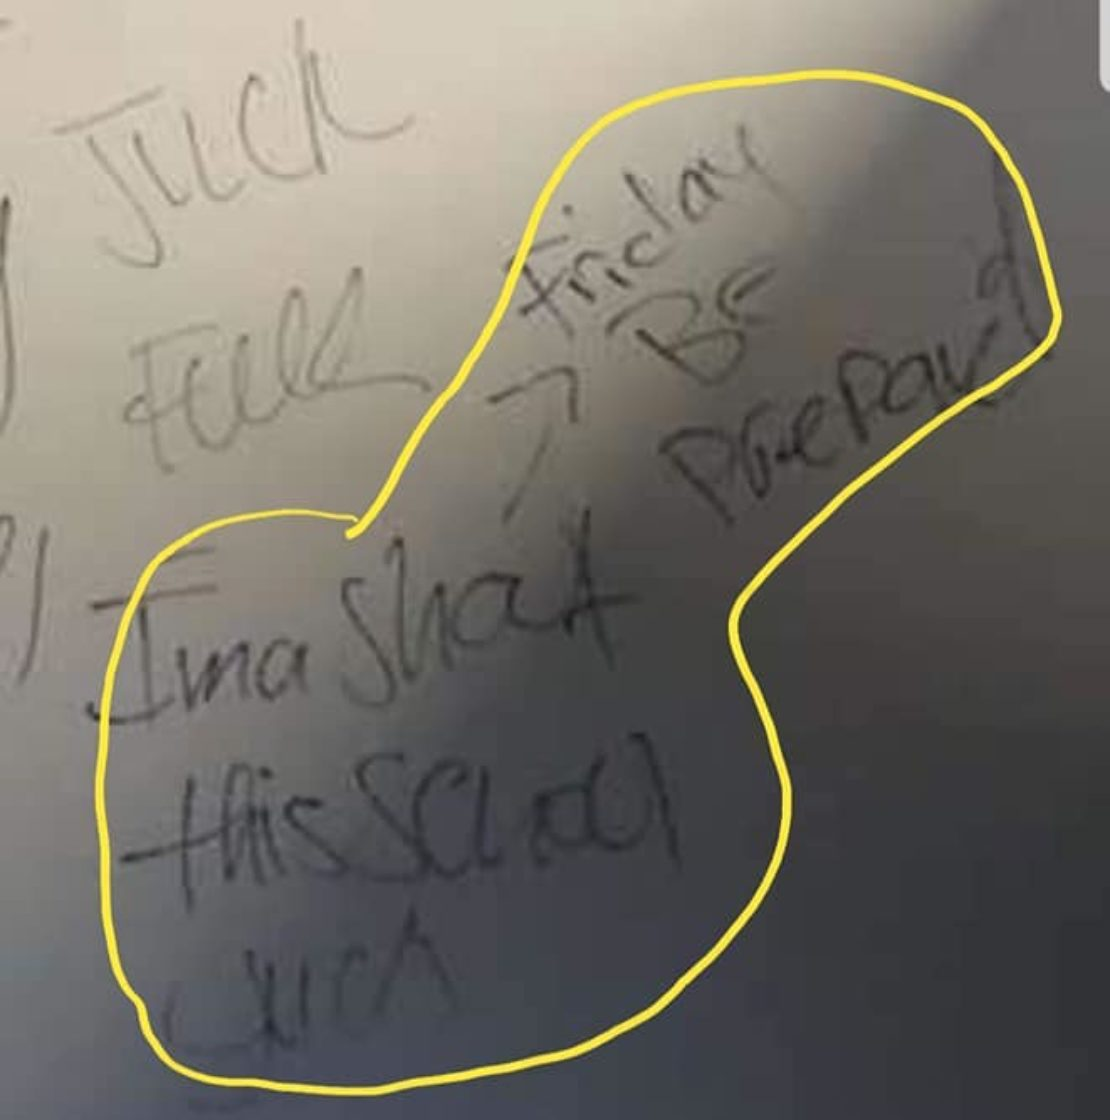 One of the threatening messages found at Mayfair High School on Oct. 8, 2019. Facebook.